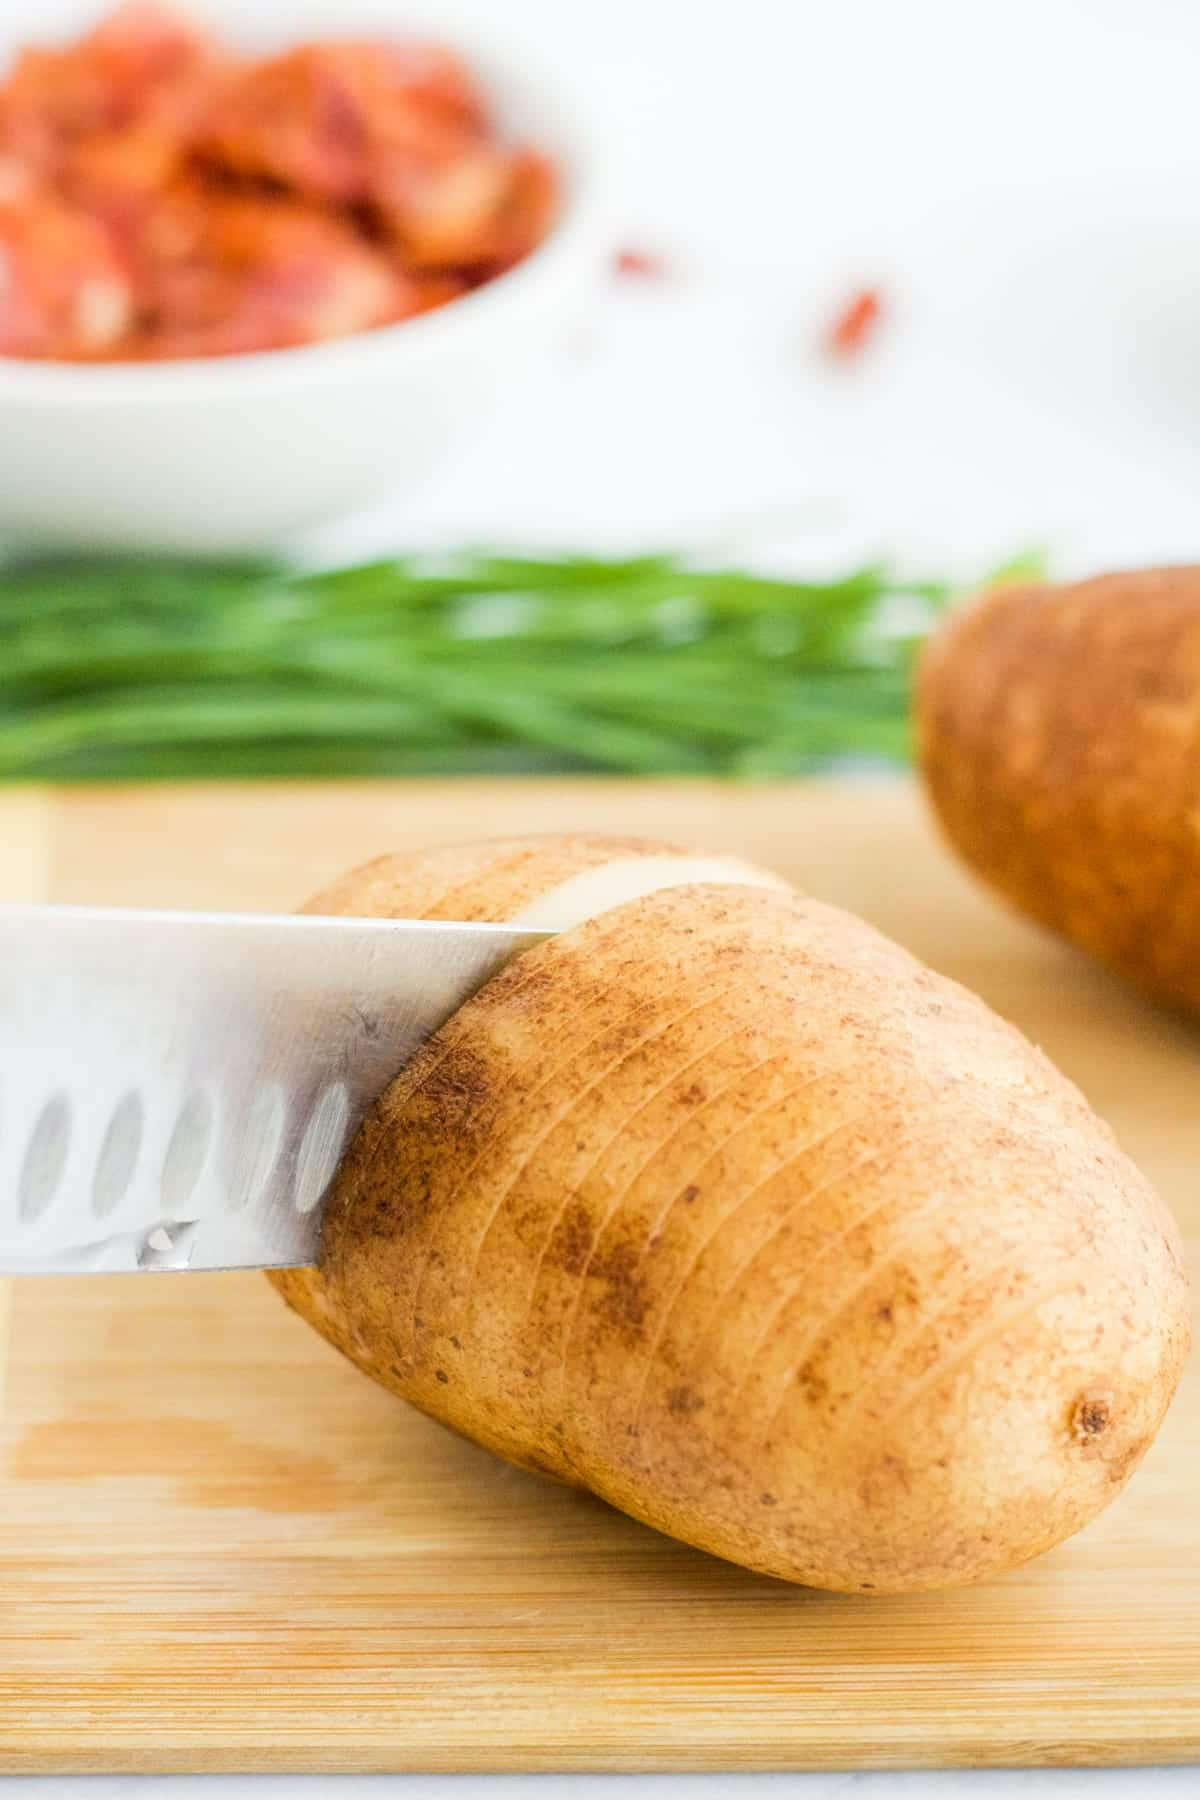 A potato being sliced on a cutting board to make Hasselback Potatoes.